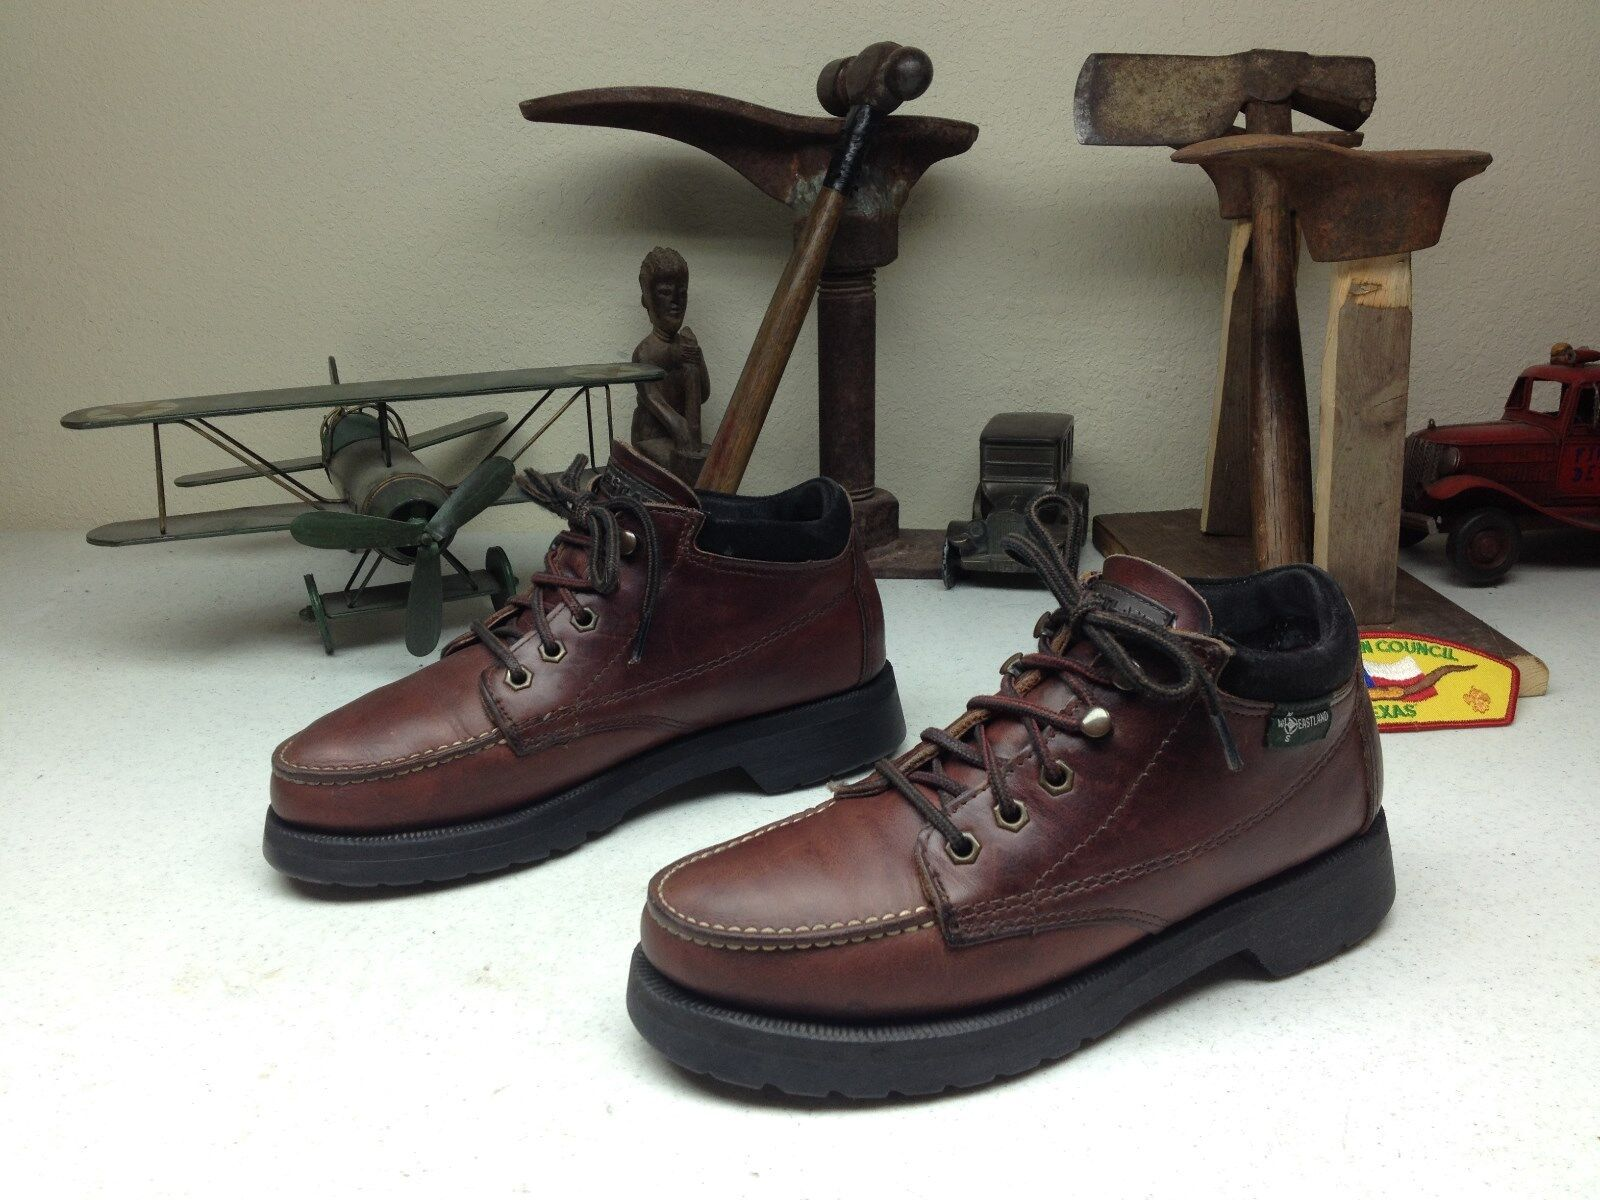 DISTRESSED BROWN OXBLOOD LEATHER MADE IN USA EASTLAND LACE UP HIKING BOOTS 8M